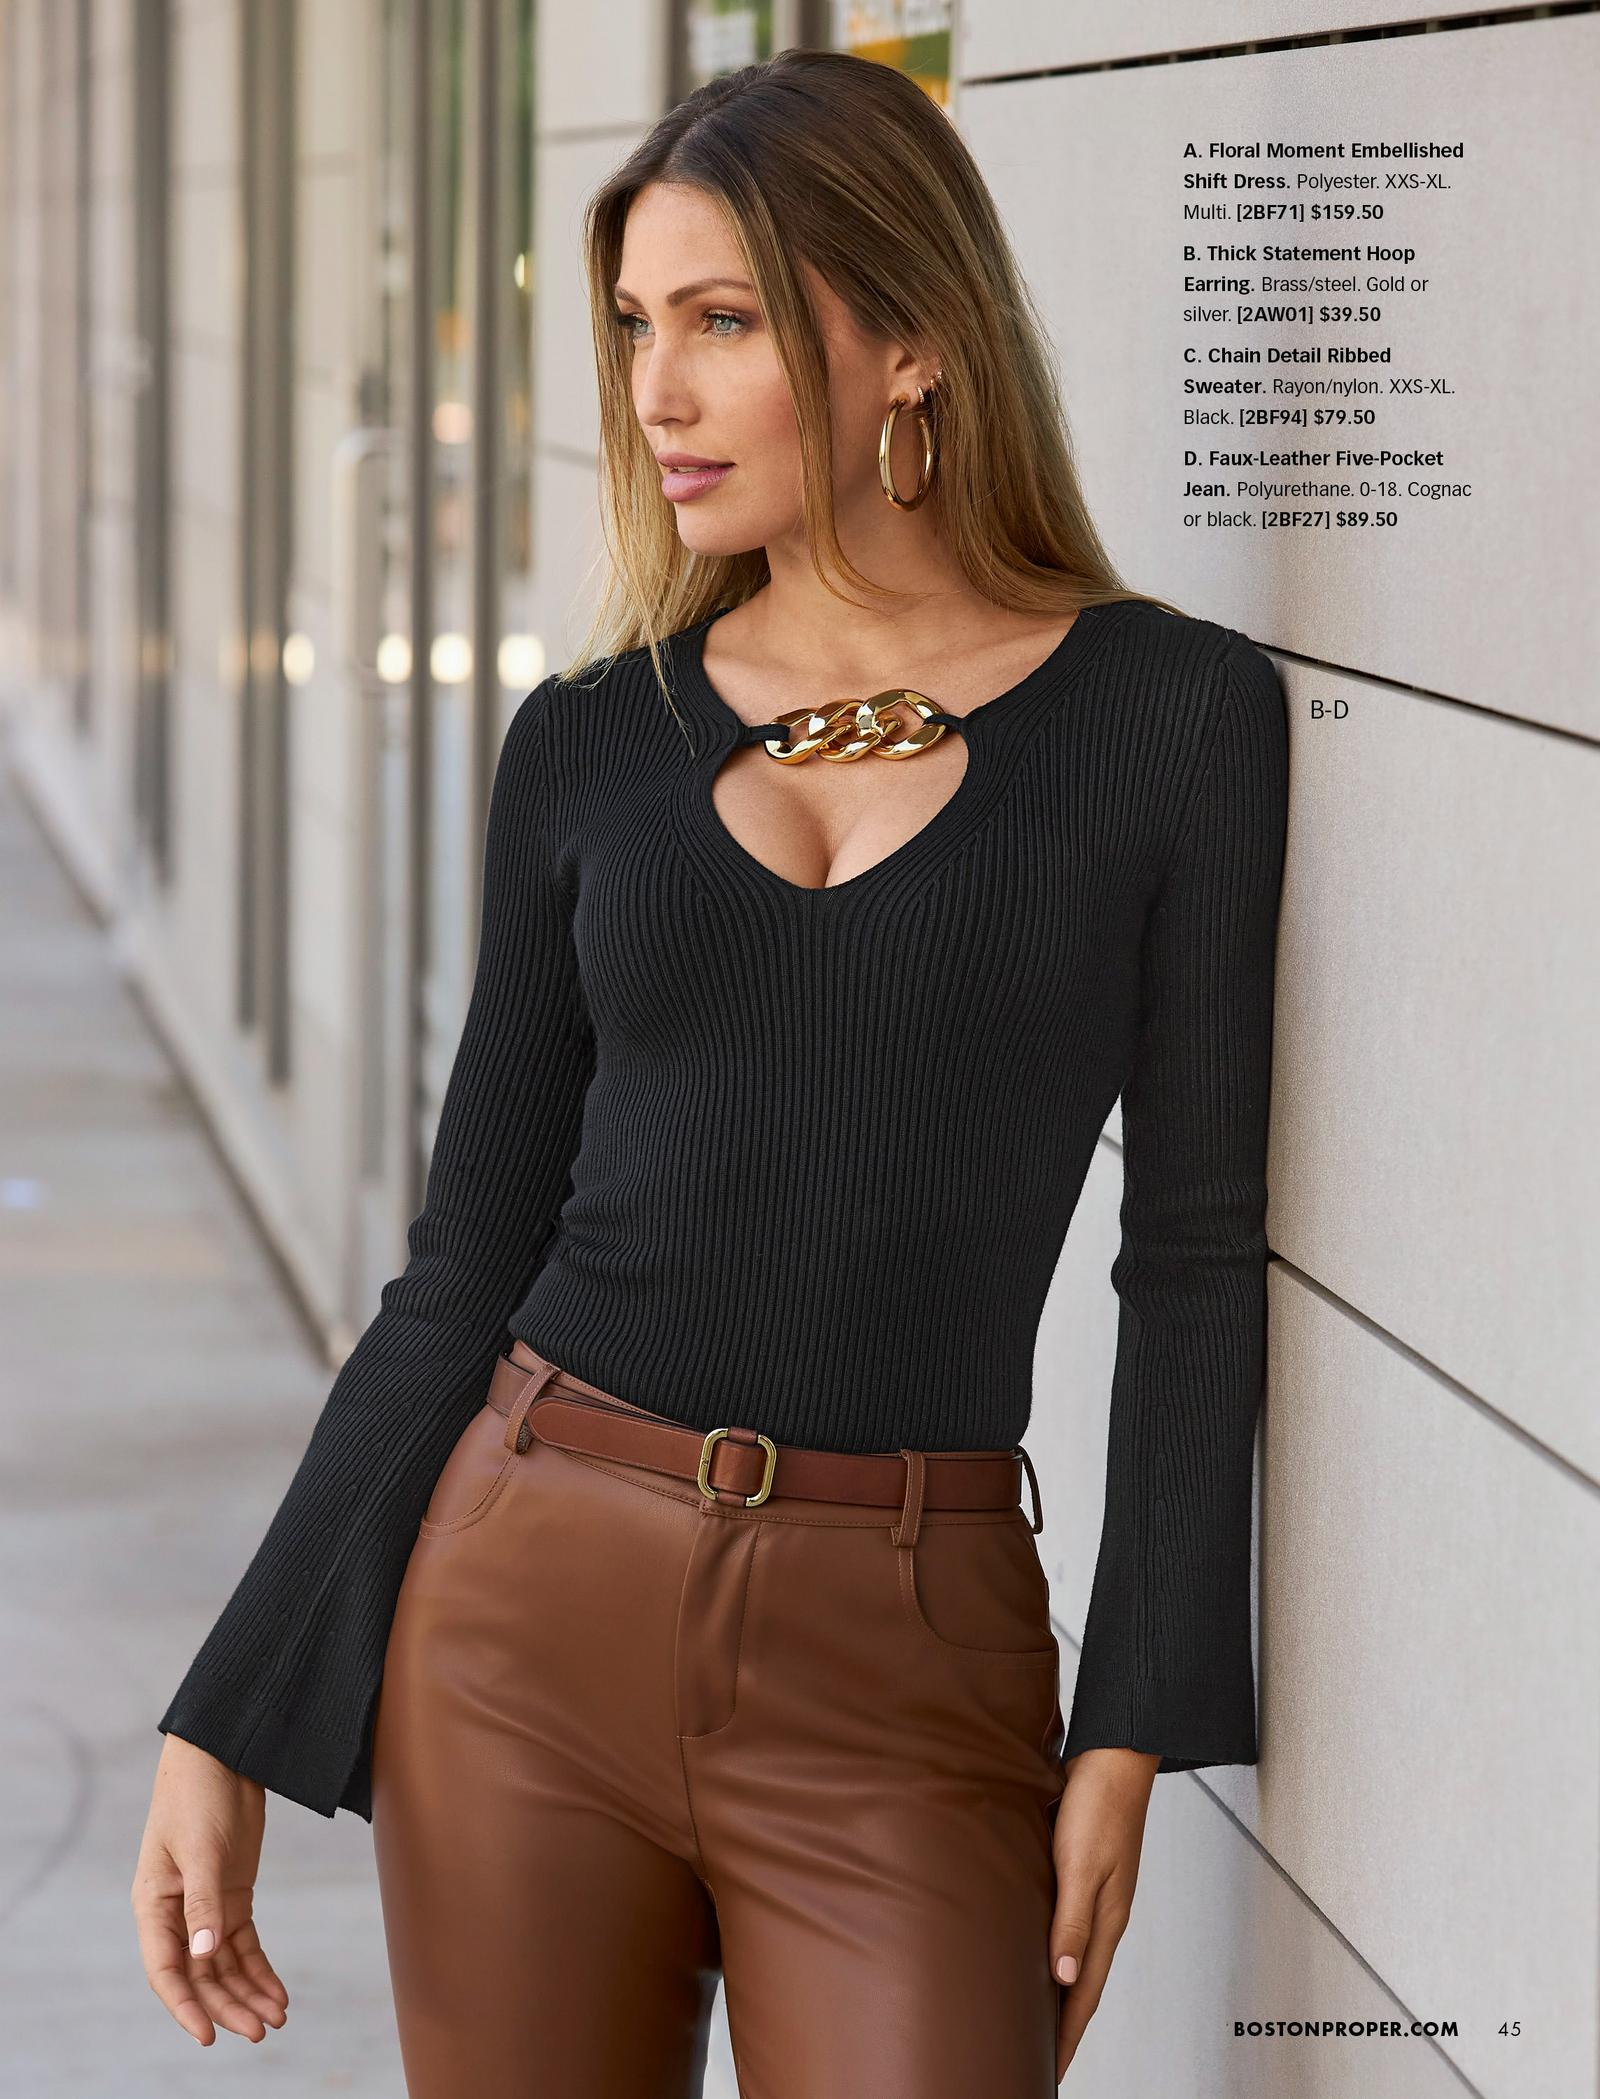 model wearing a black ribbed chain detail keyhole sweater, brown belt, gold hoop earrings, and brown faux-leather jeans.